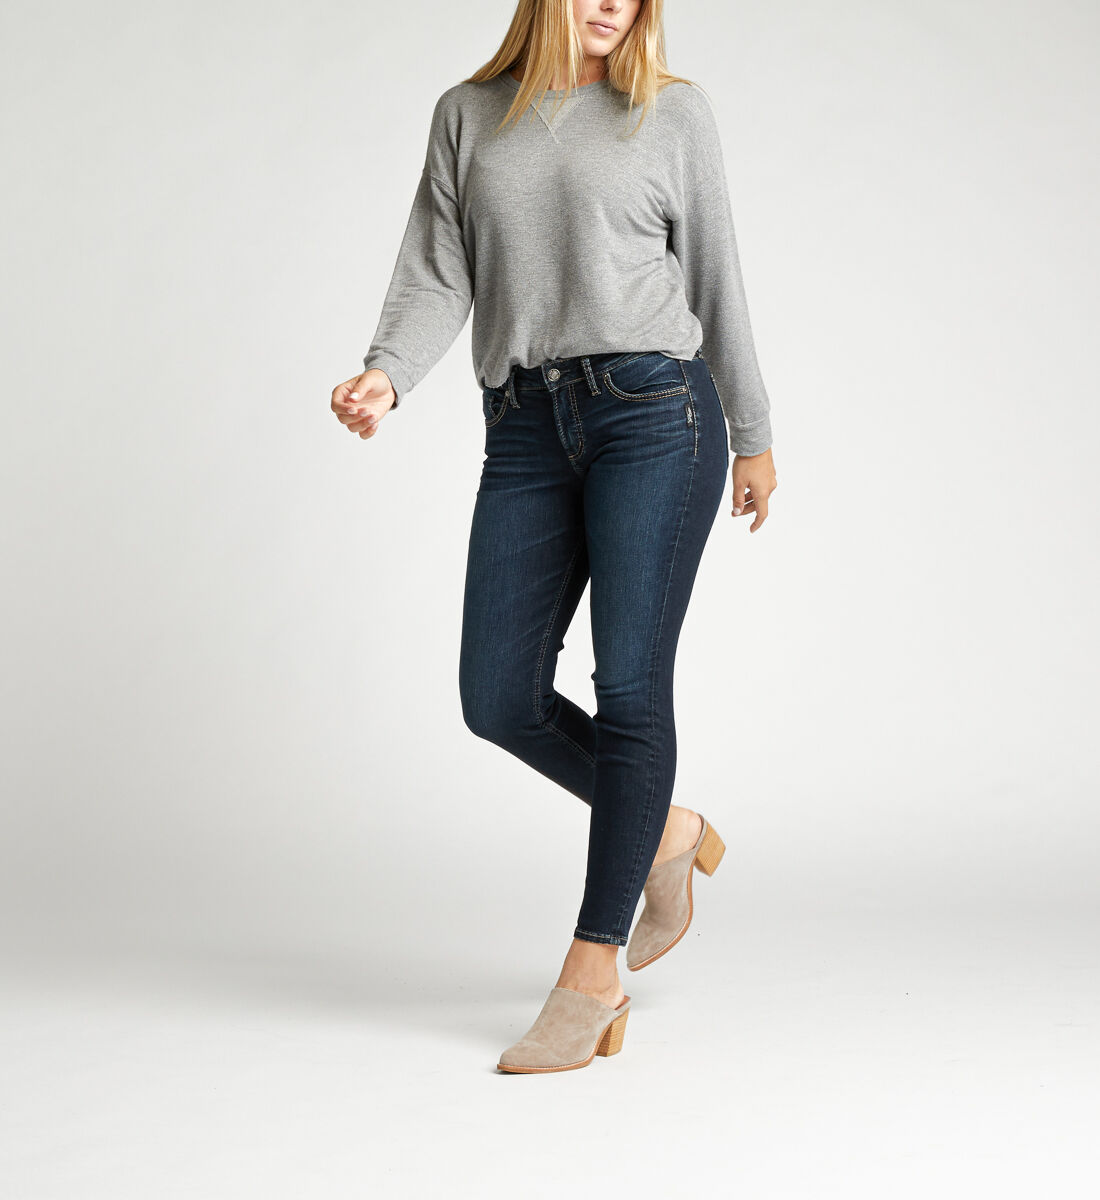 Avery High Rise Skinny Jeans Alt Image 1